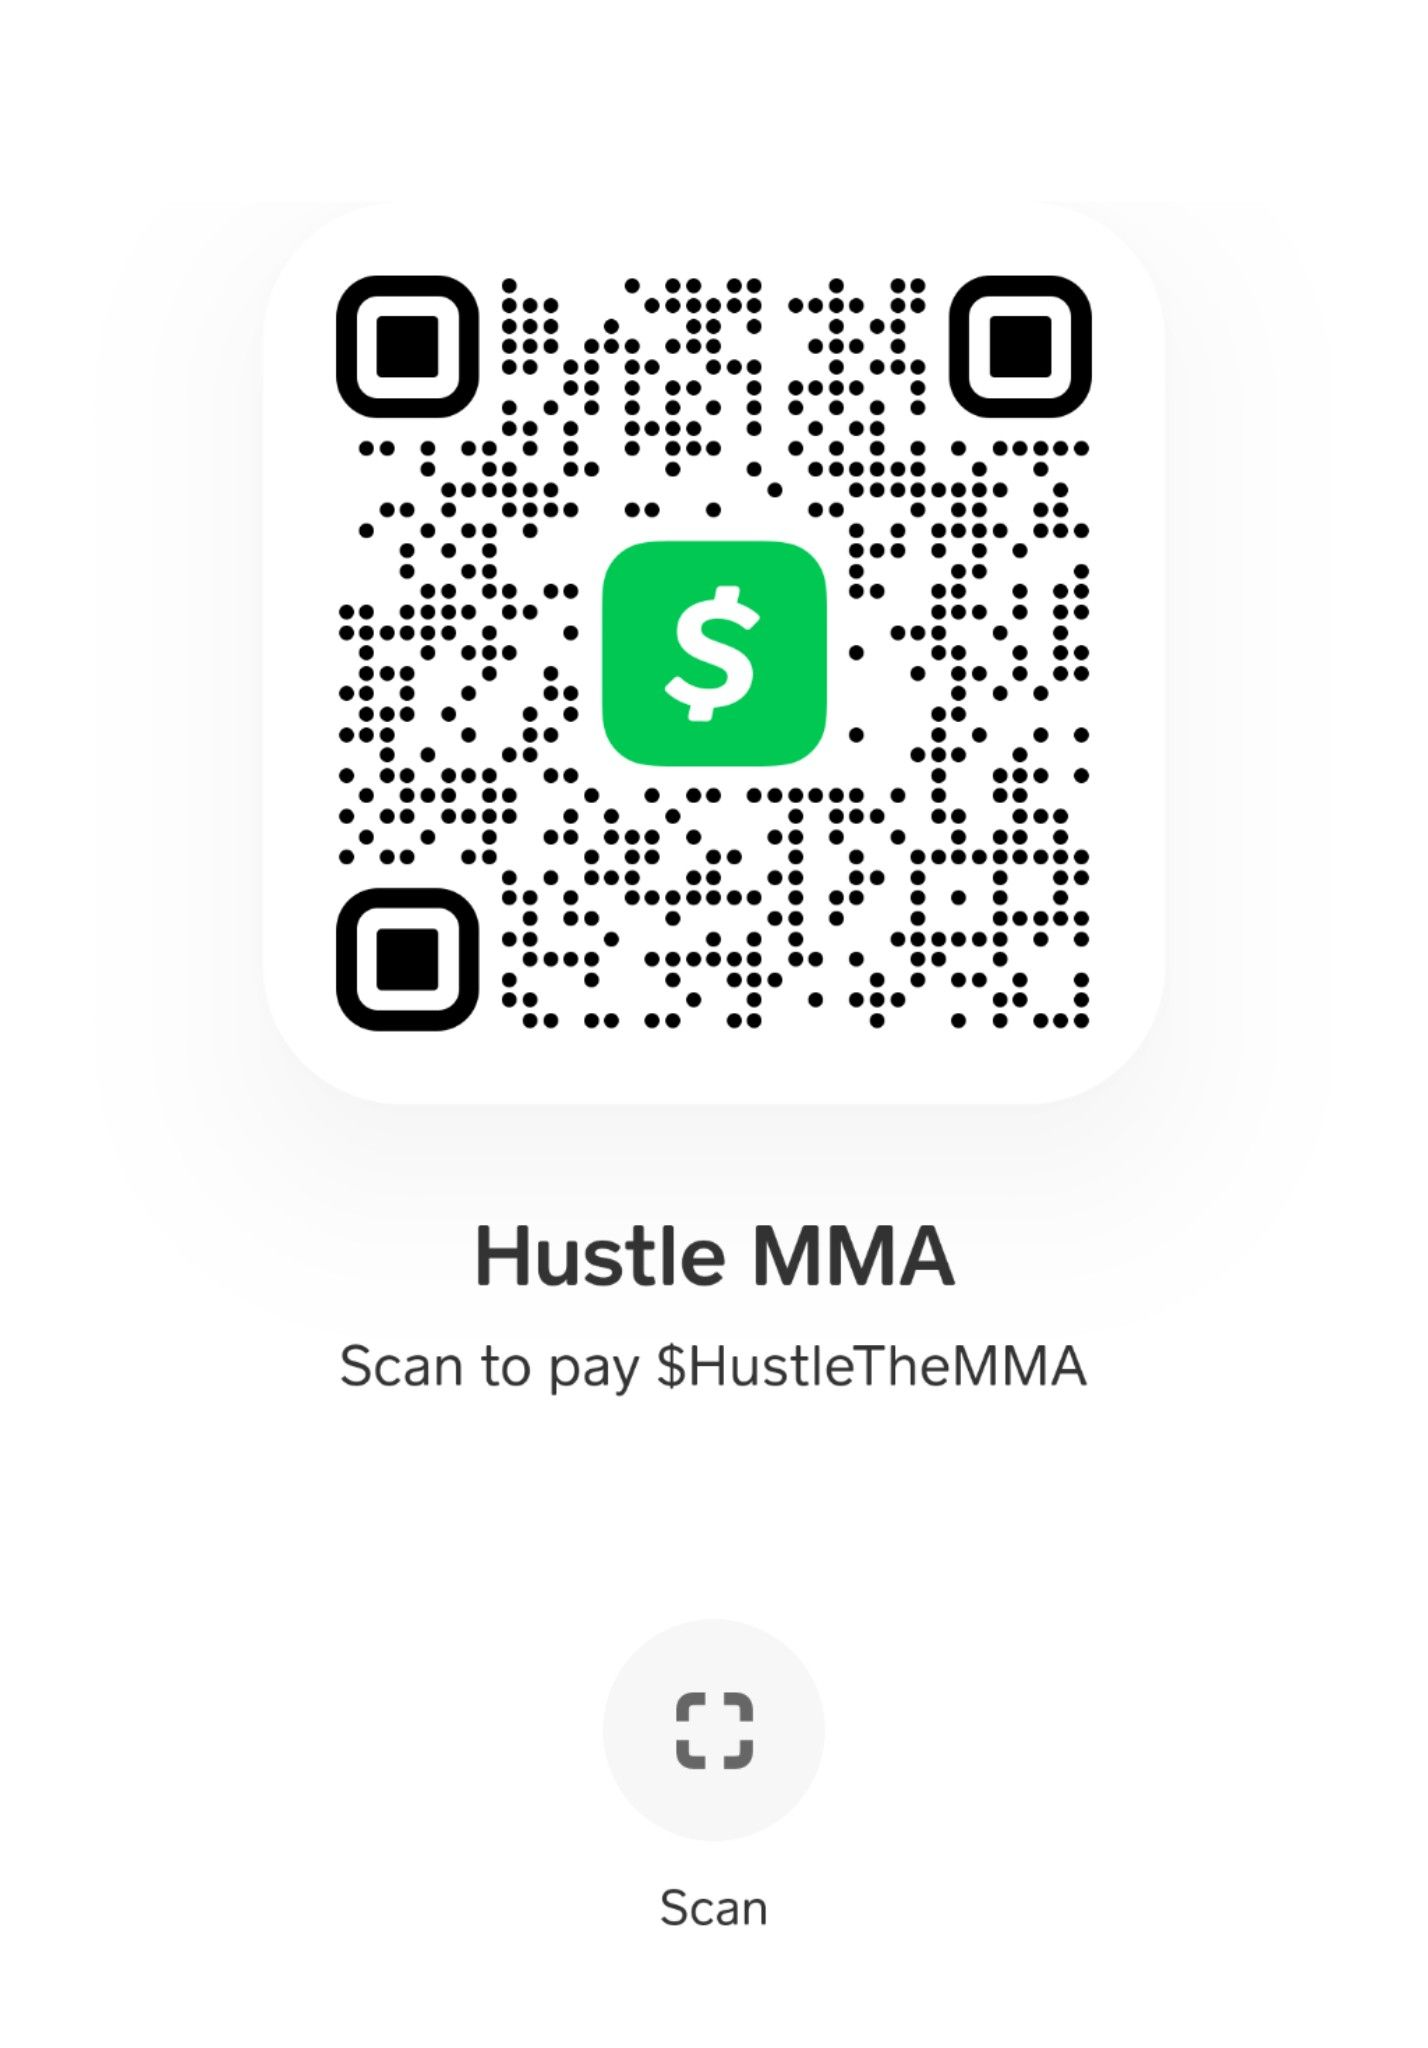 Hustle The MMA Cash App. Help support Hustle The MMA